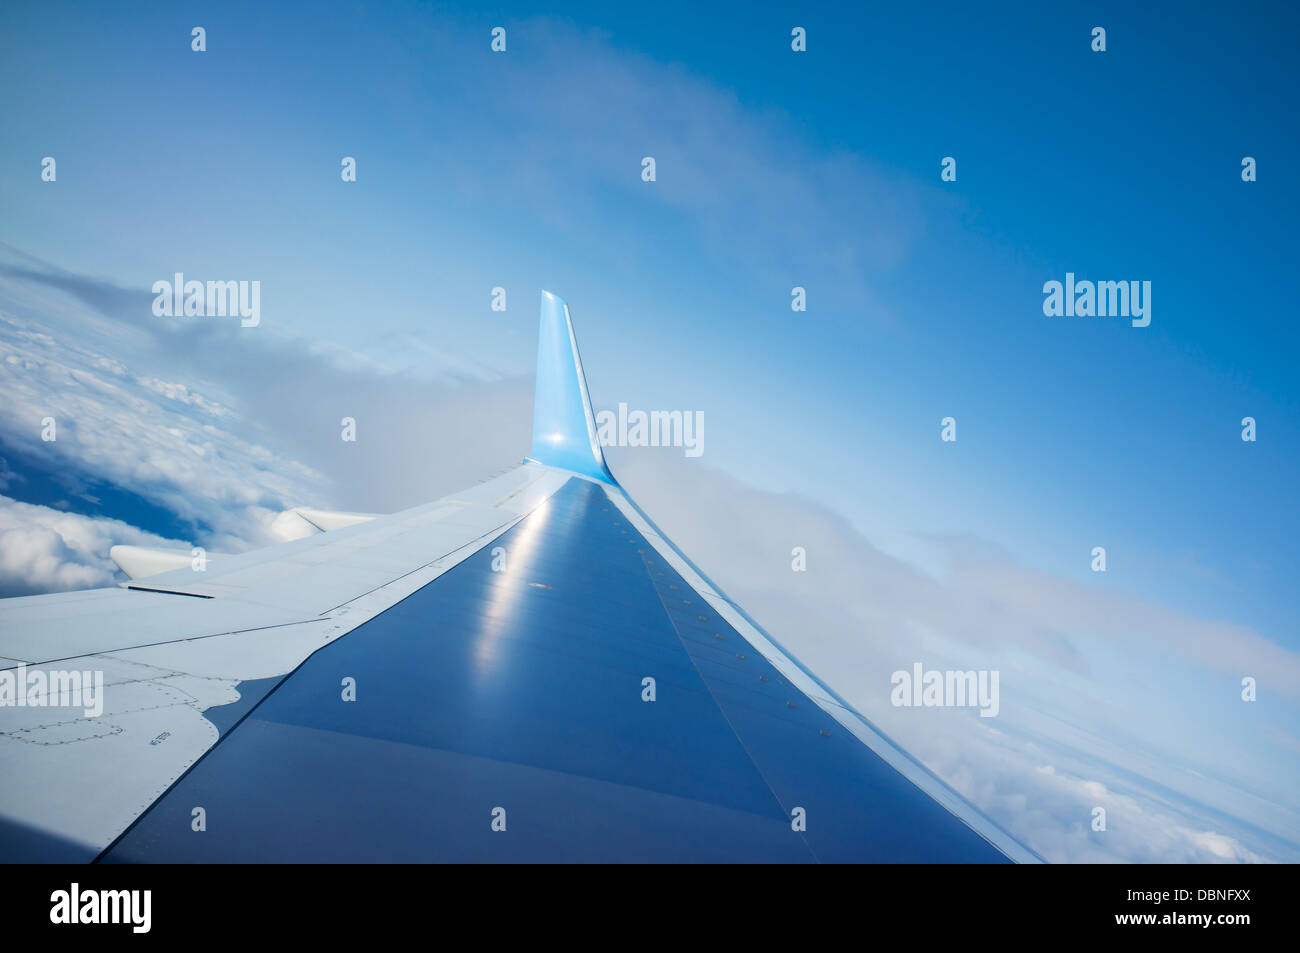 Close-up of airplane wing - Stock Image